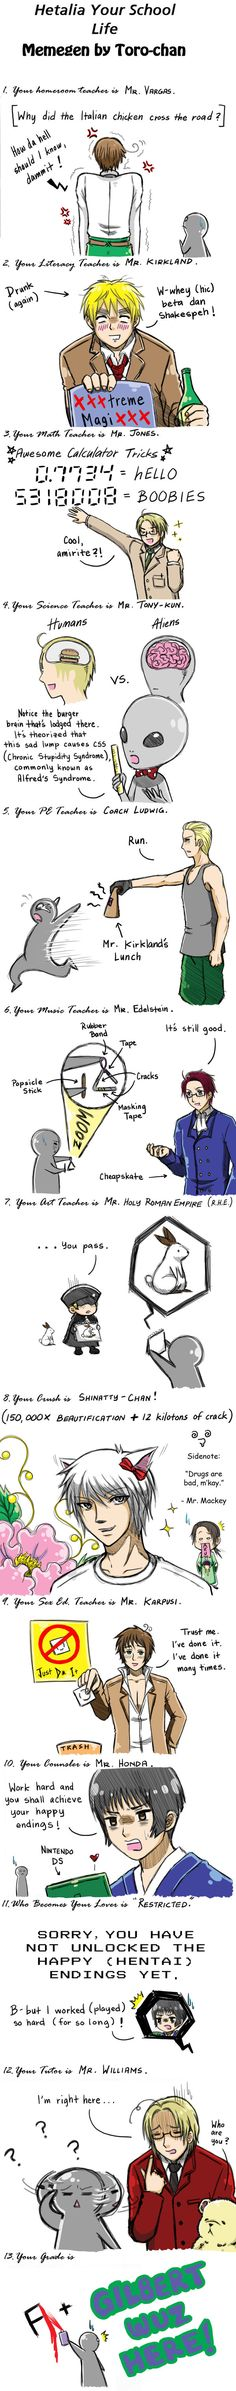 Hetalia: Hetalia School Meme by ~khakipants12 I can't help it, its just so funny!